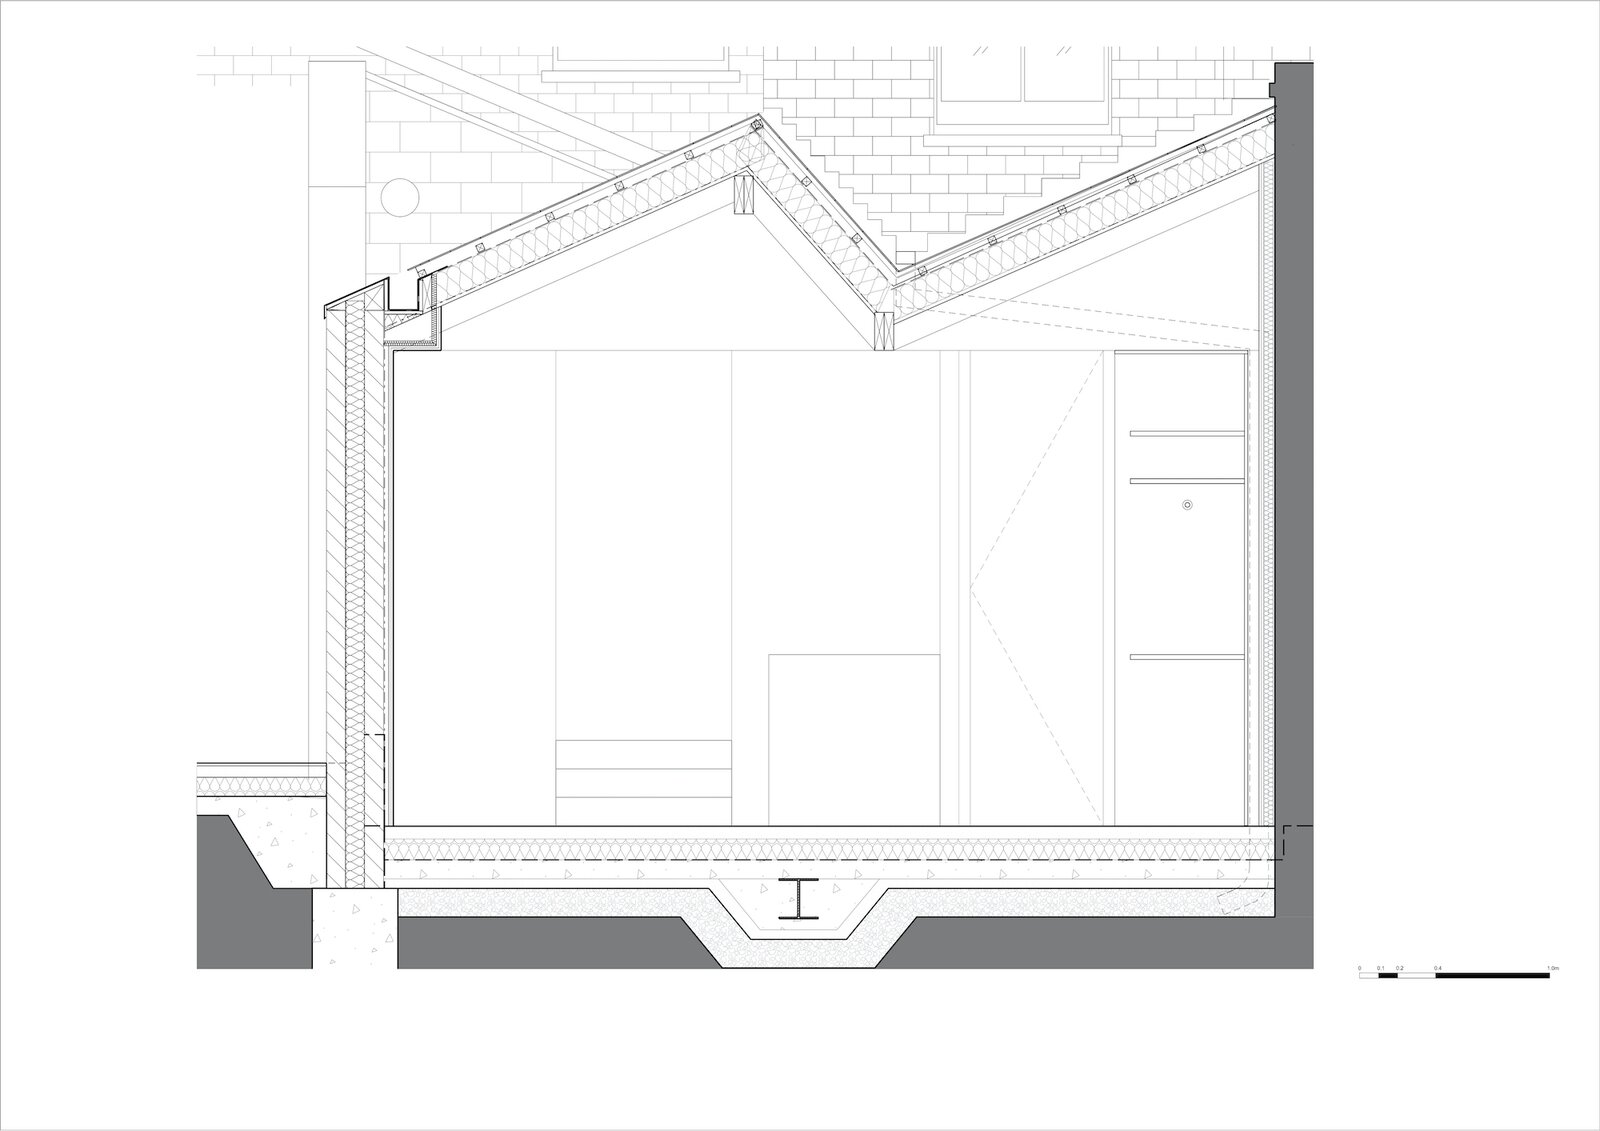 Section through the extension of Zigzag Roof House by 4 S Architecture.